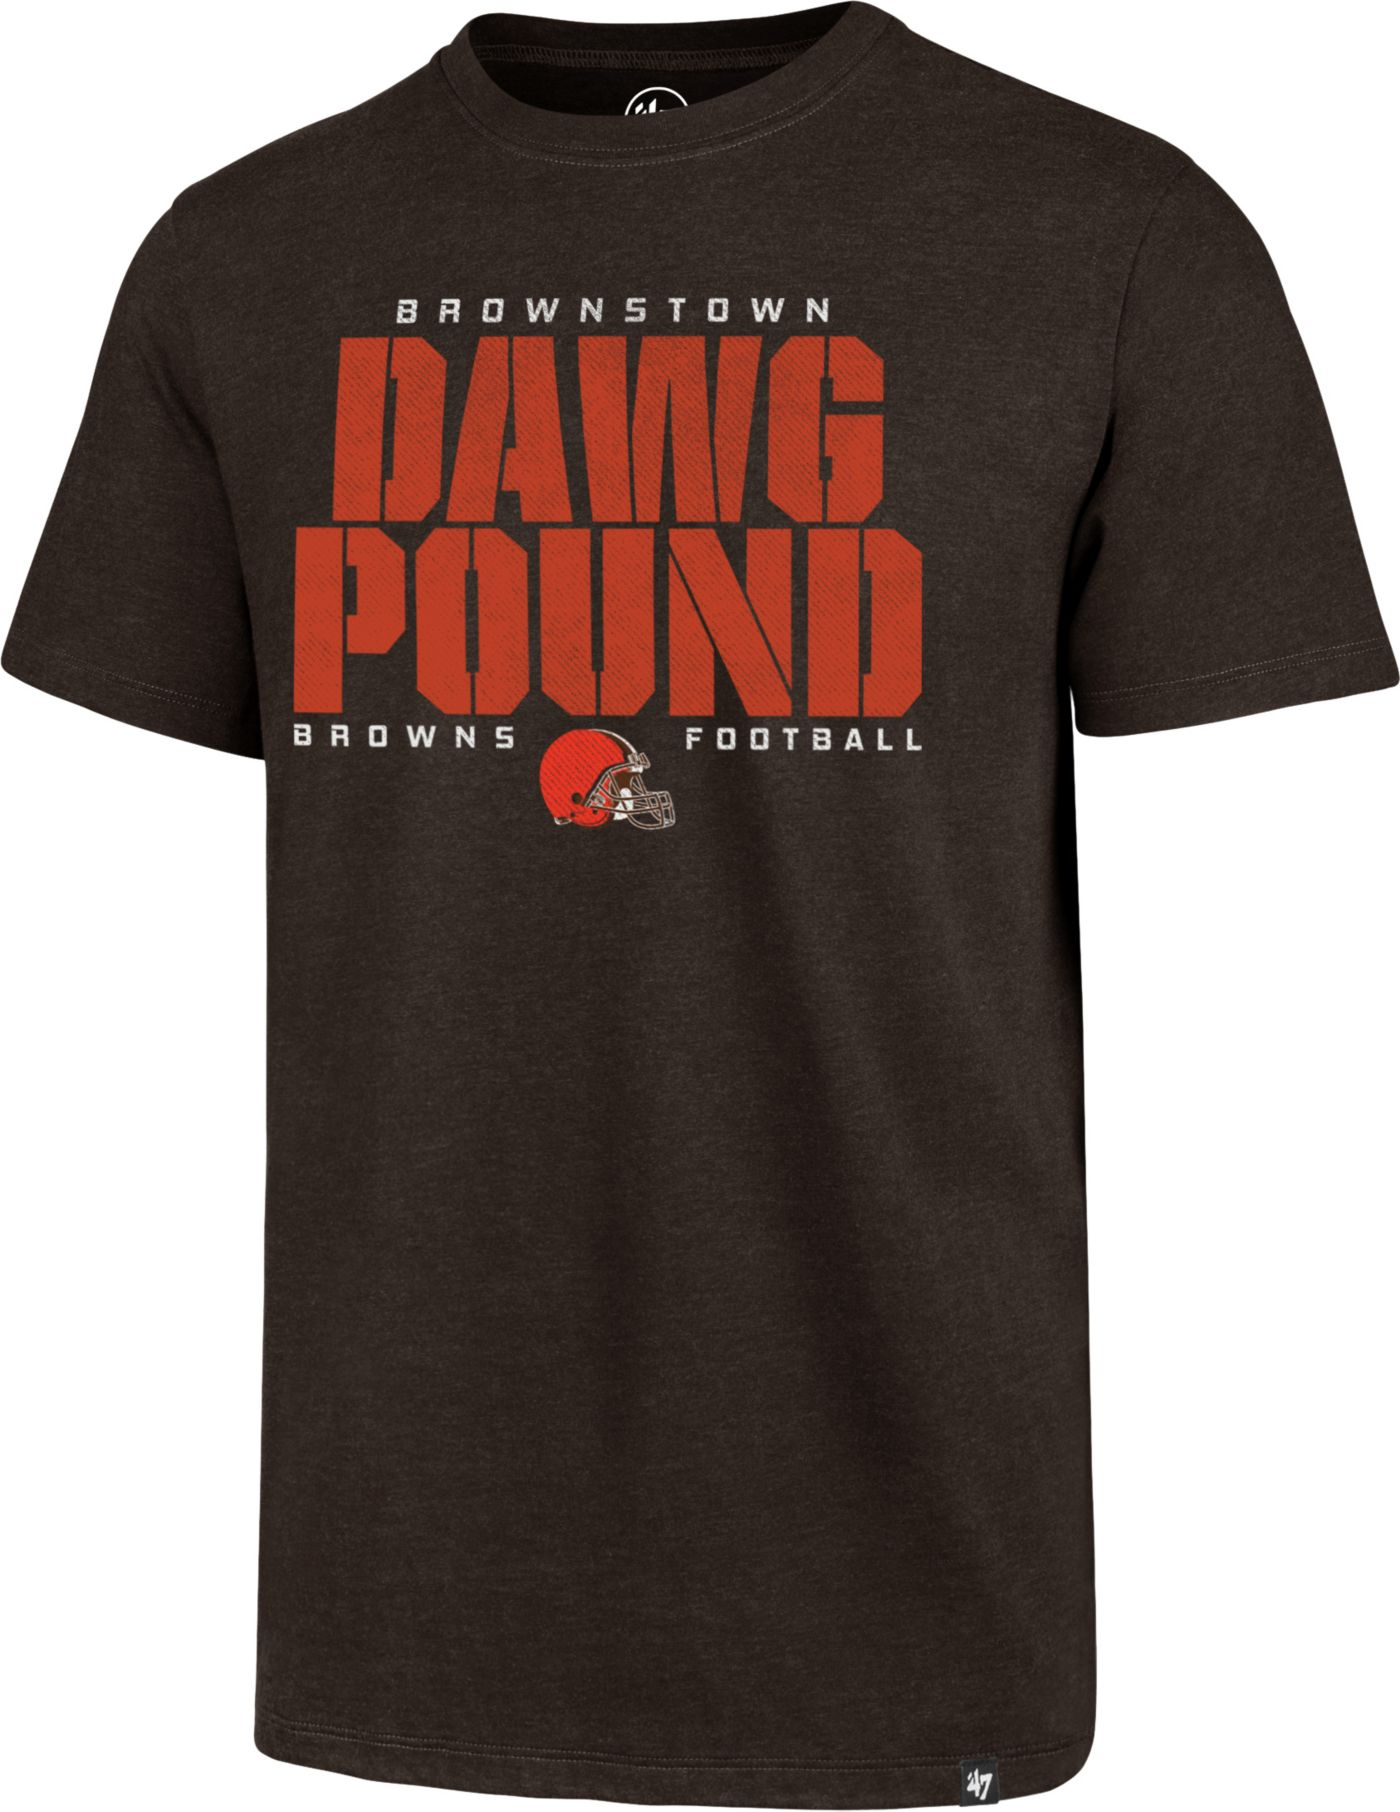 '47 Men's Cleveland Browns Dawg Pound Club Brown T-Shirt